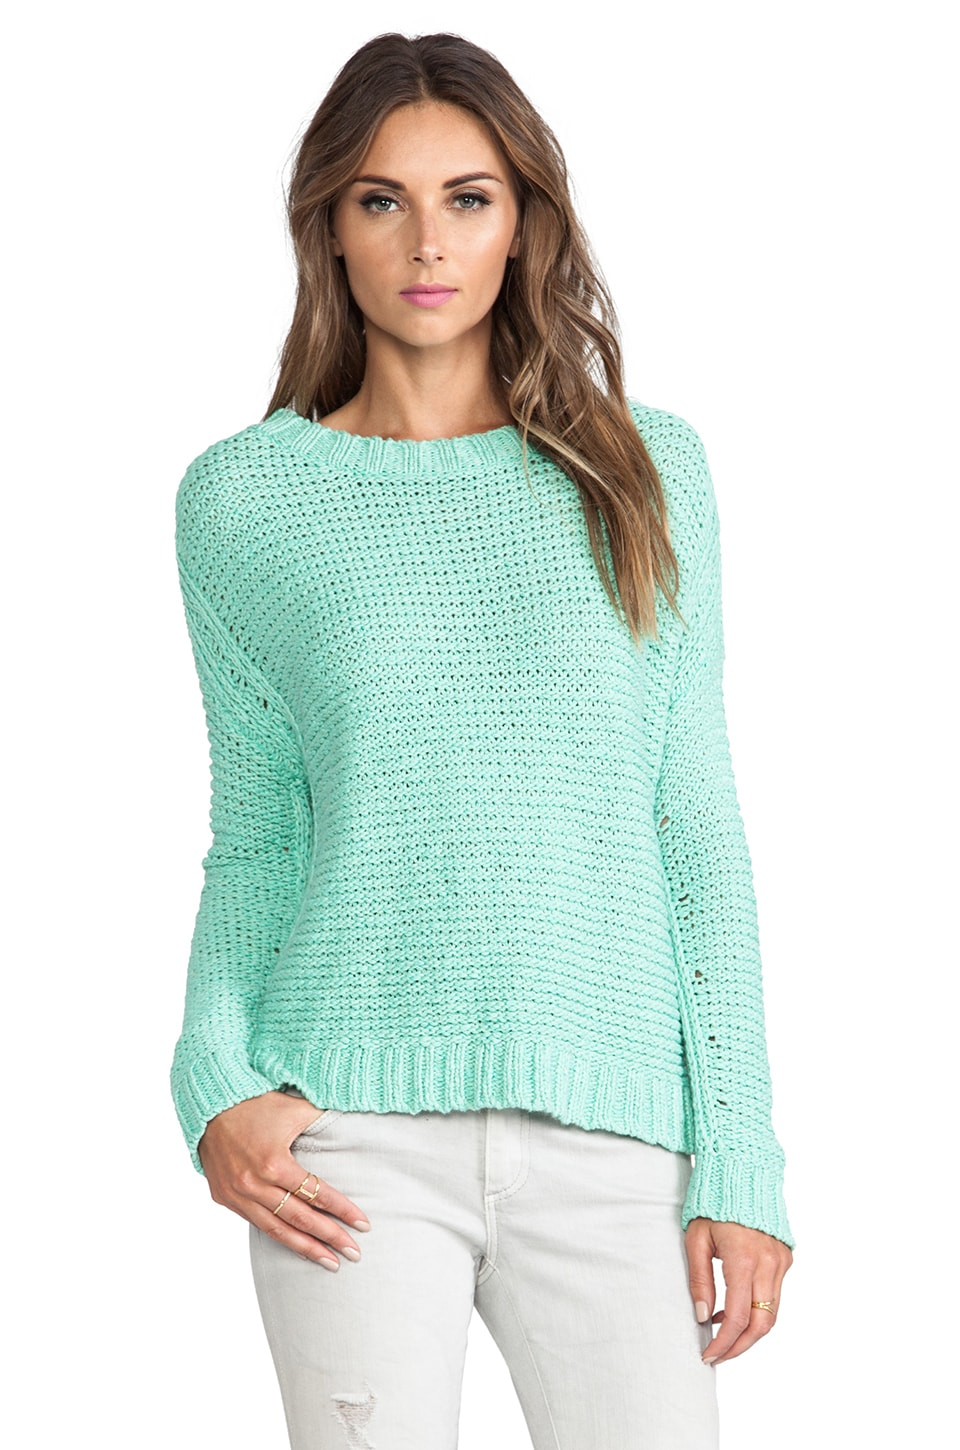 Elizabeth and James Boxy Pullover Sweater in Mint